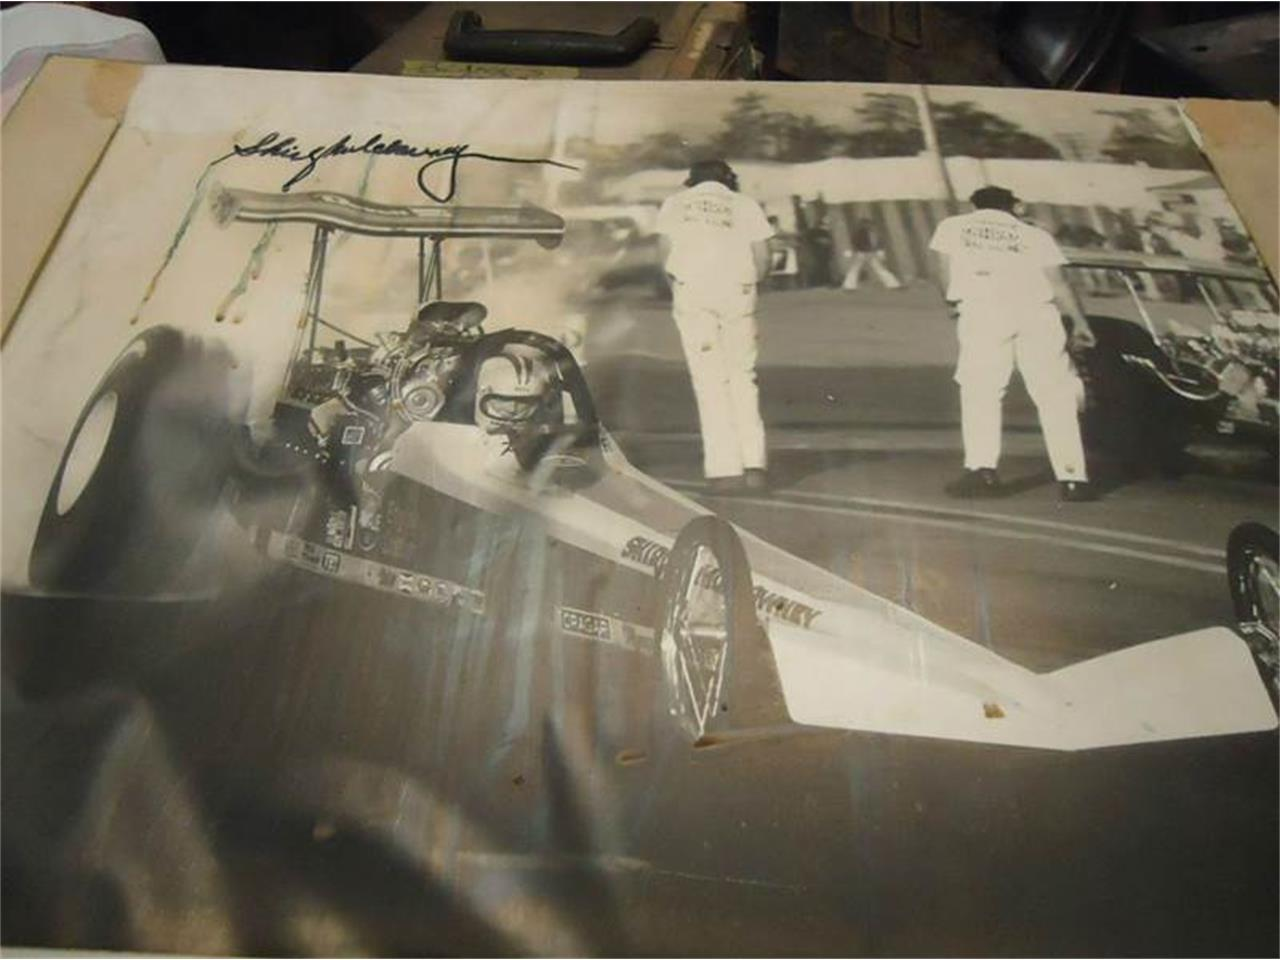 1975 dragster 1970 s for sale in Jackson, MI – photo 19